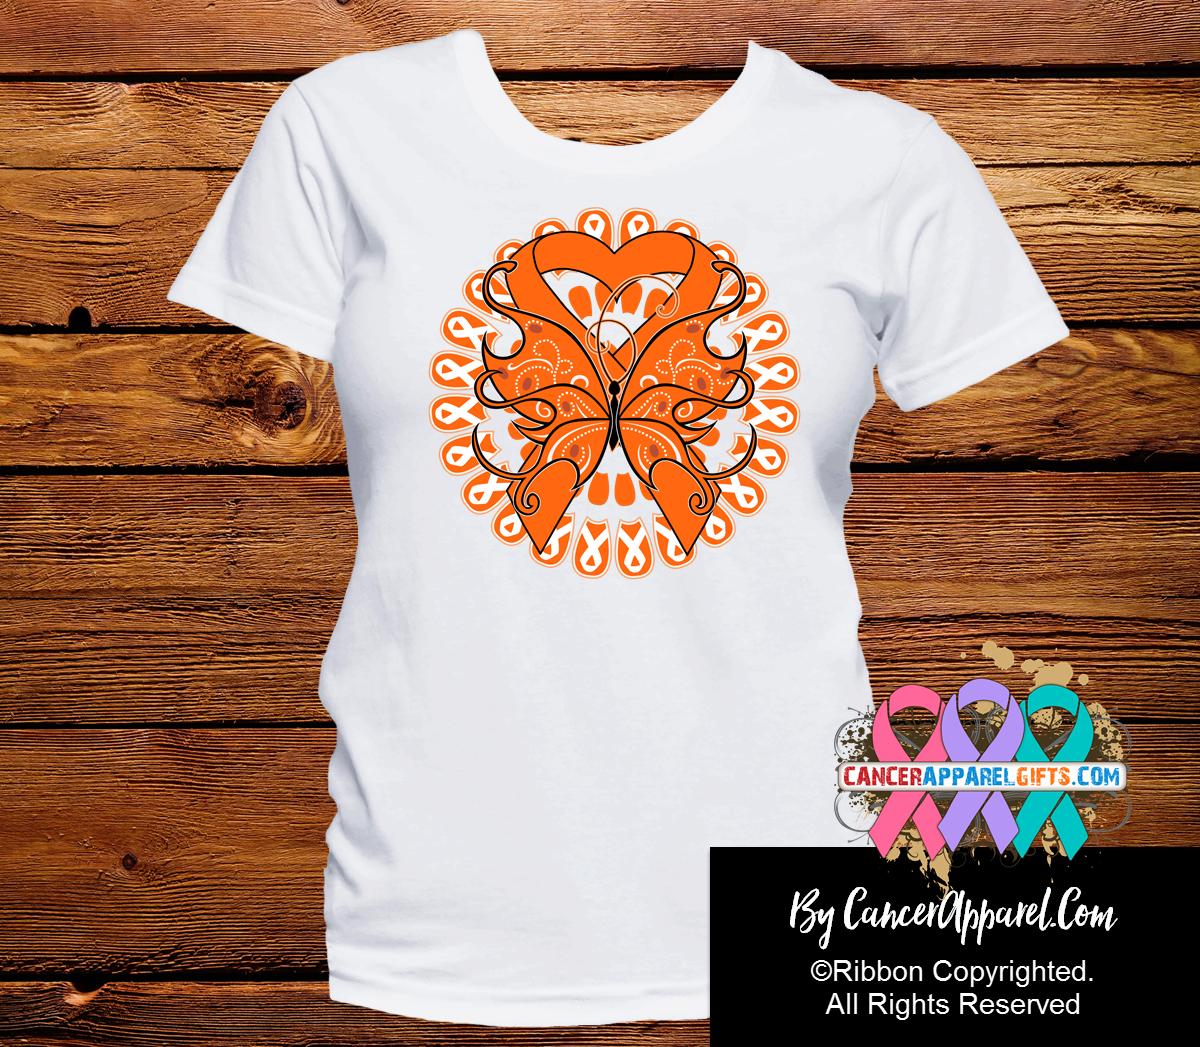 Leukemia Stunning Butterfly Shirts - Cancer Apparel and Gifts